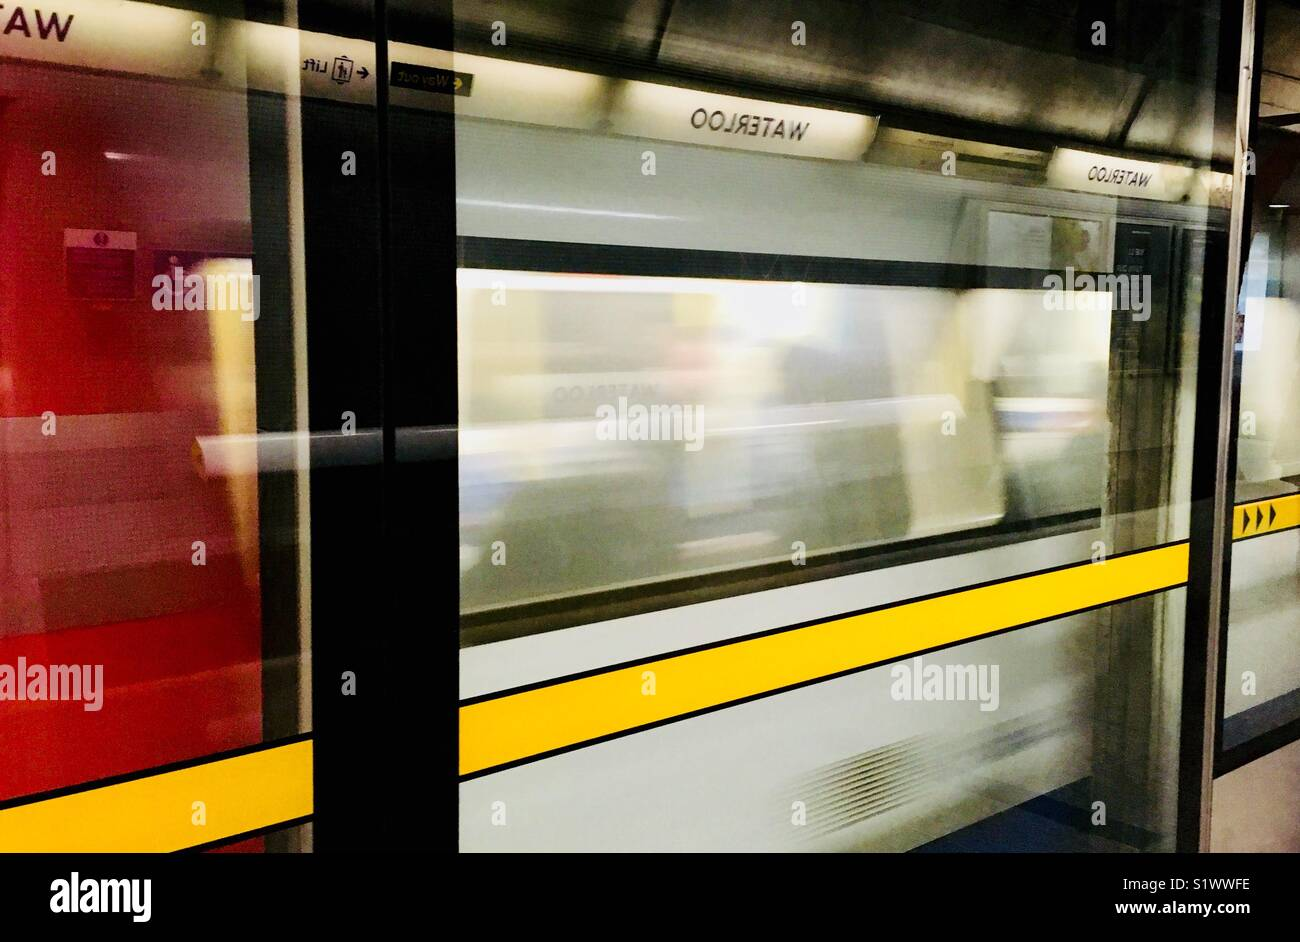 Tube arriving at Waterloo Station. - Stock Image